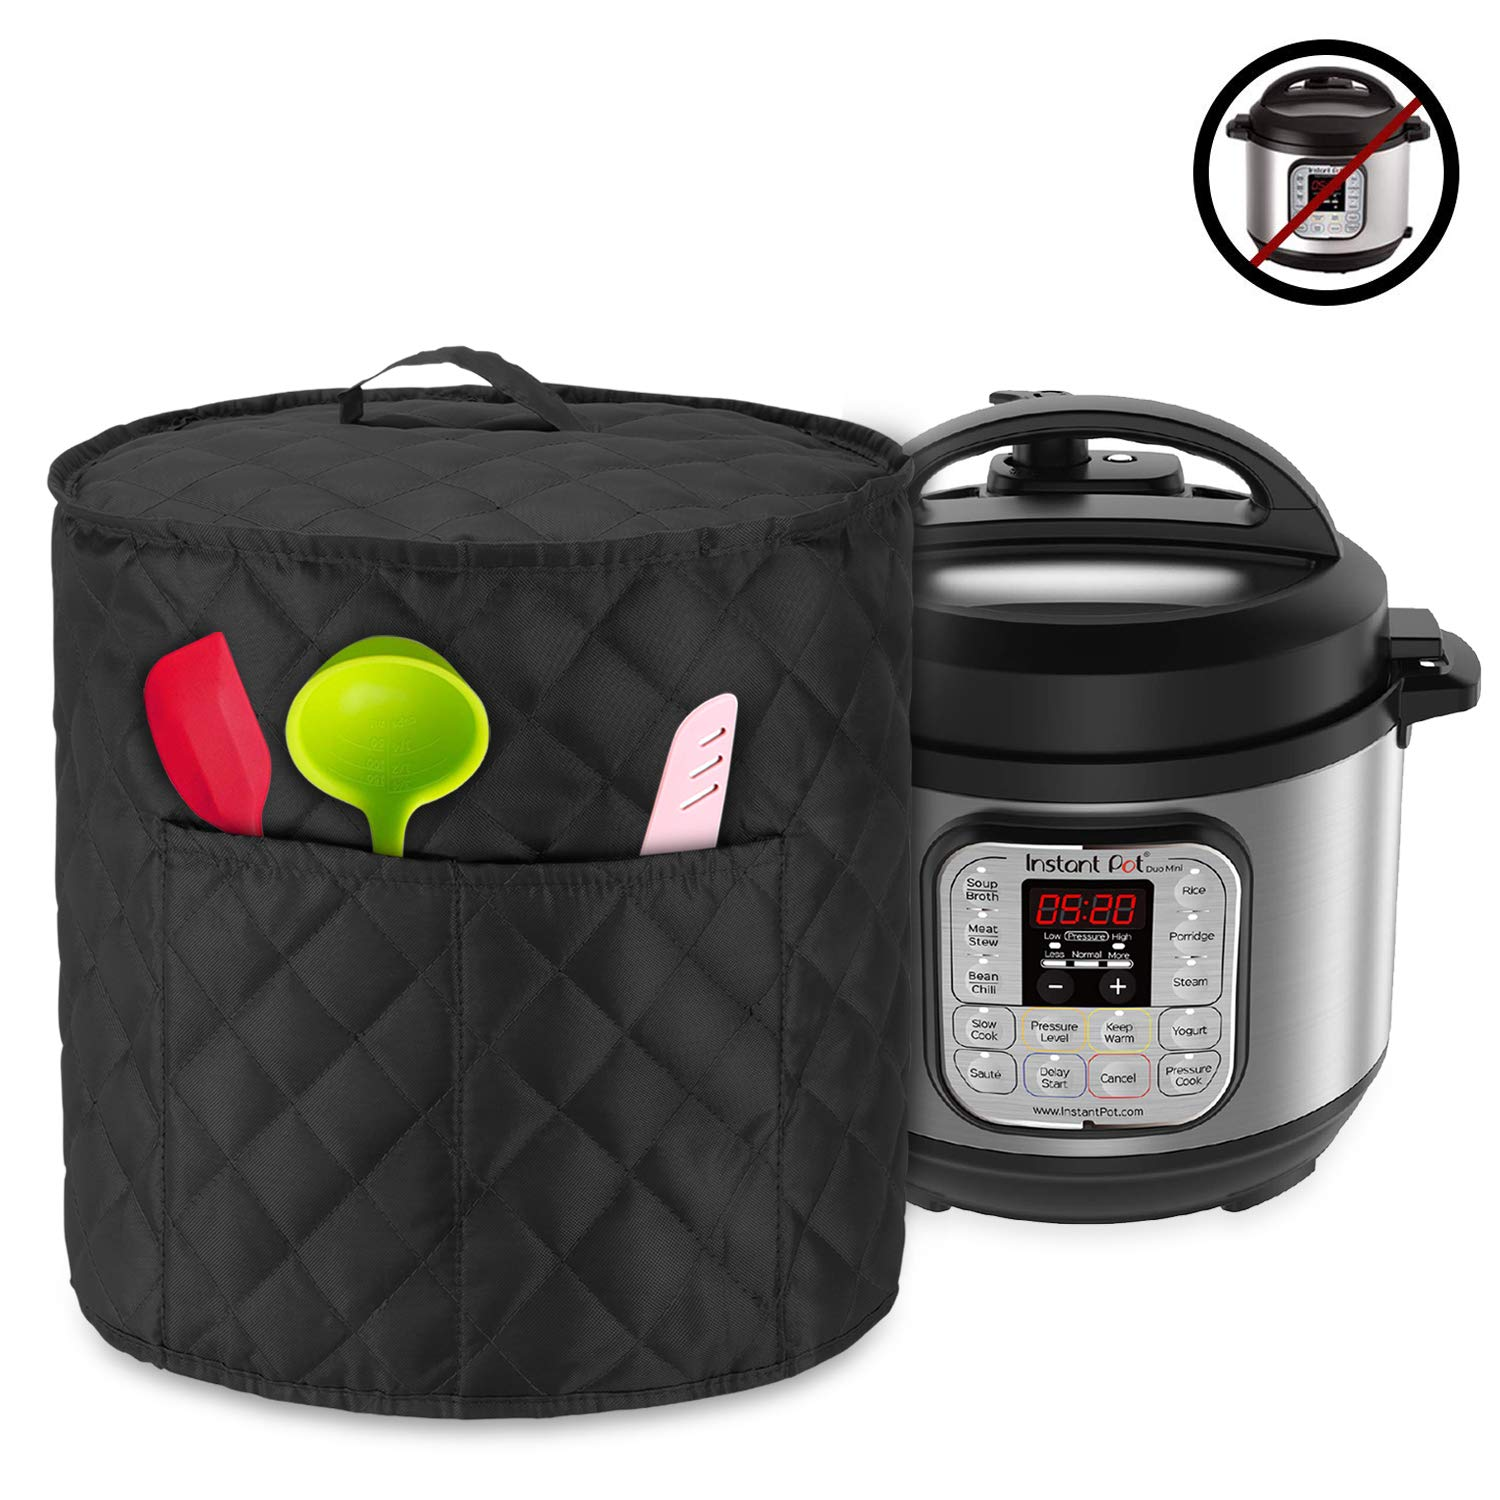 Luxja Dust Cover for 3 Quart Instant Pot, Cloth Cover with Pockets for Instant Pot (3 Quart) and Extra Accessories, Black Quilted Fabric (Small)